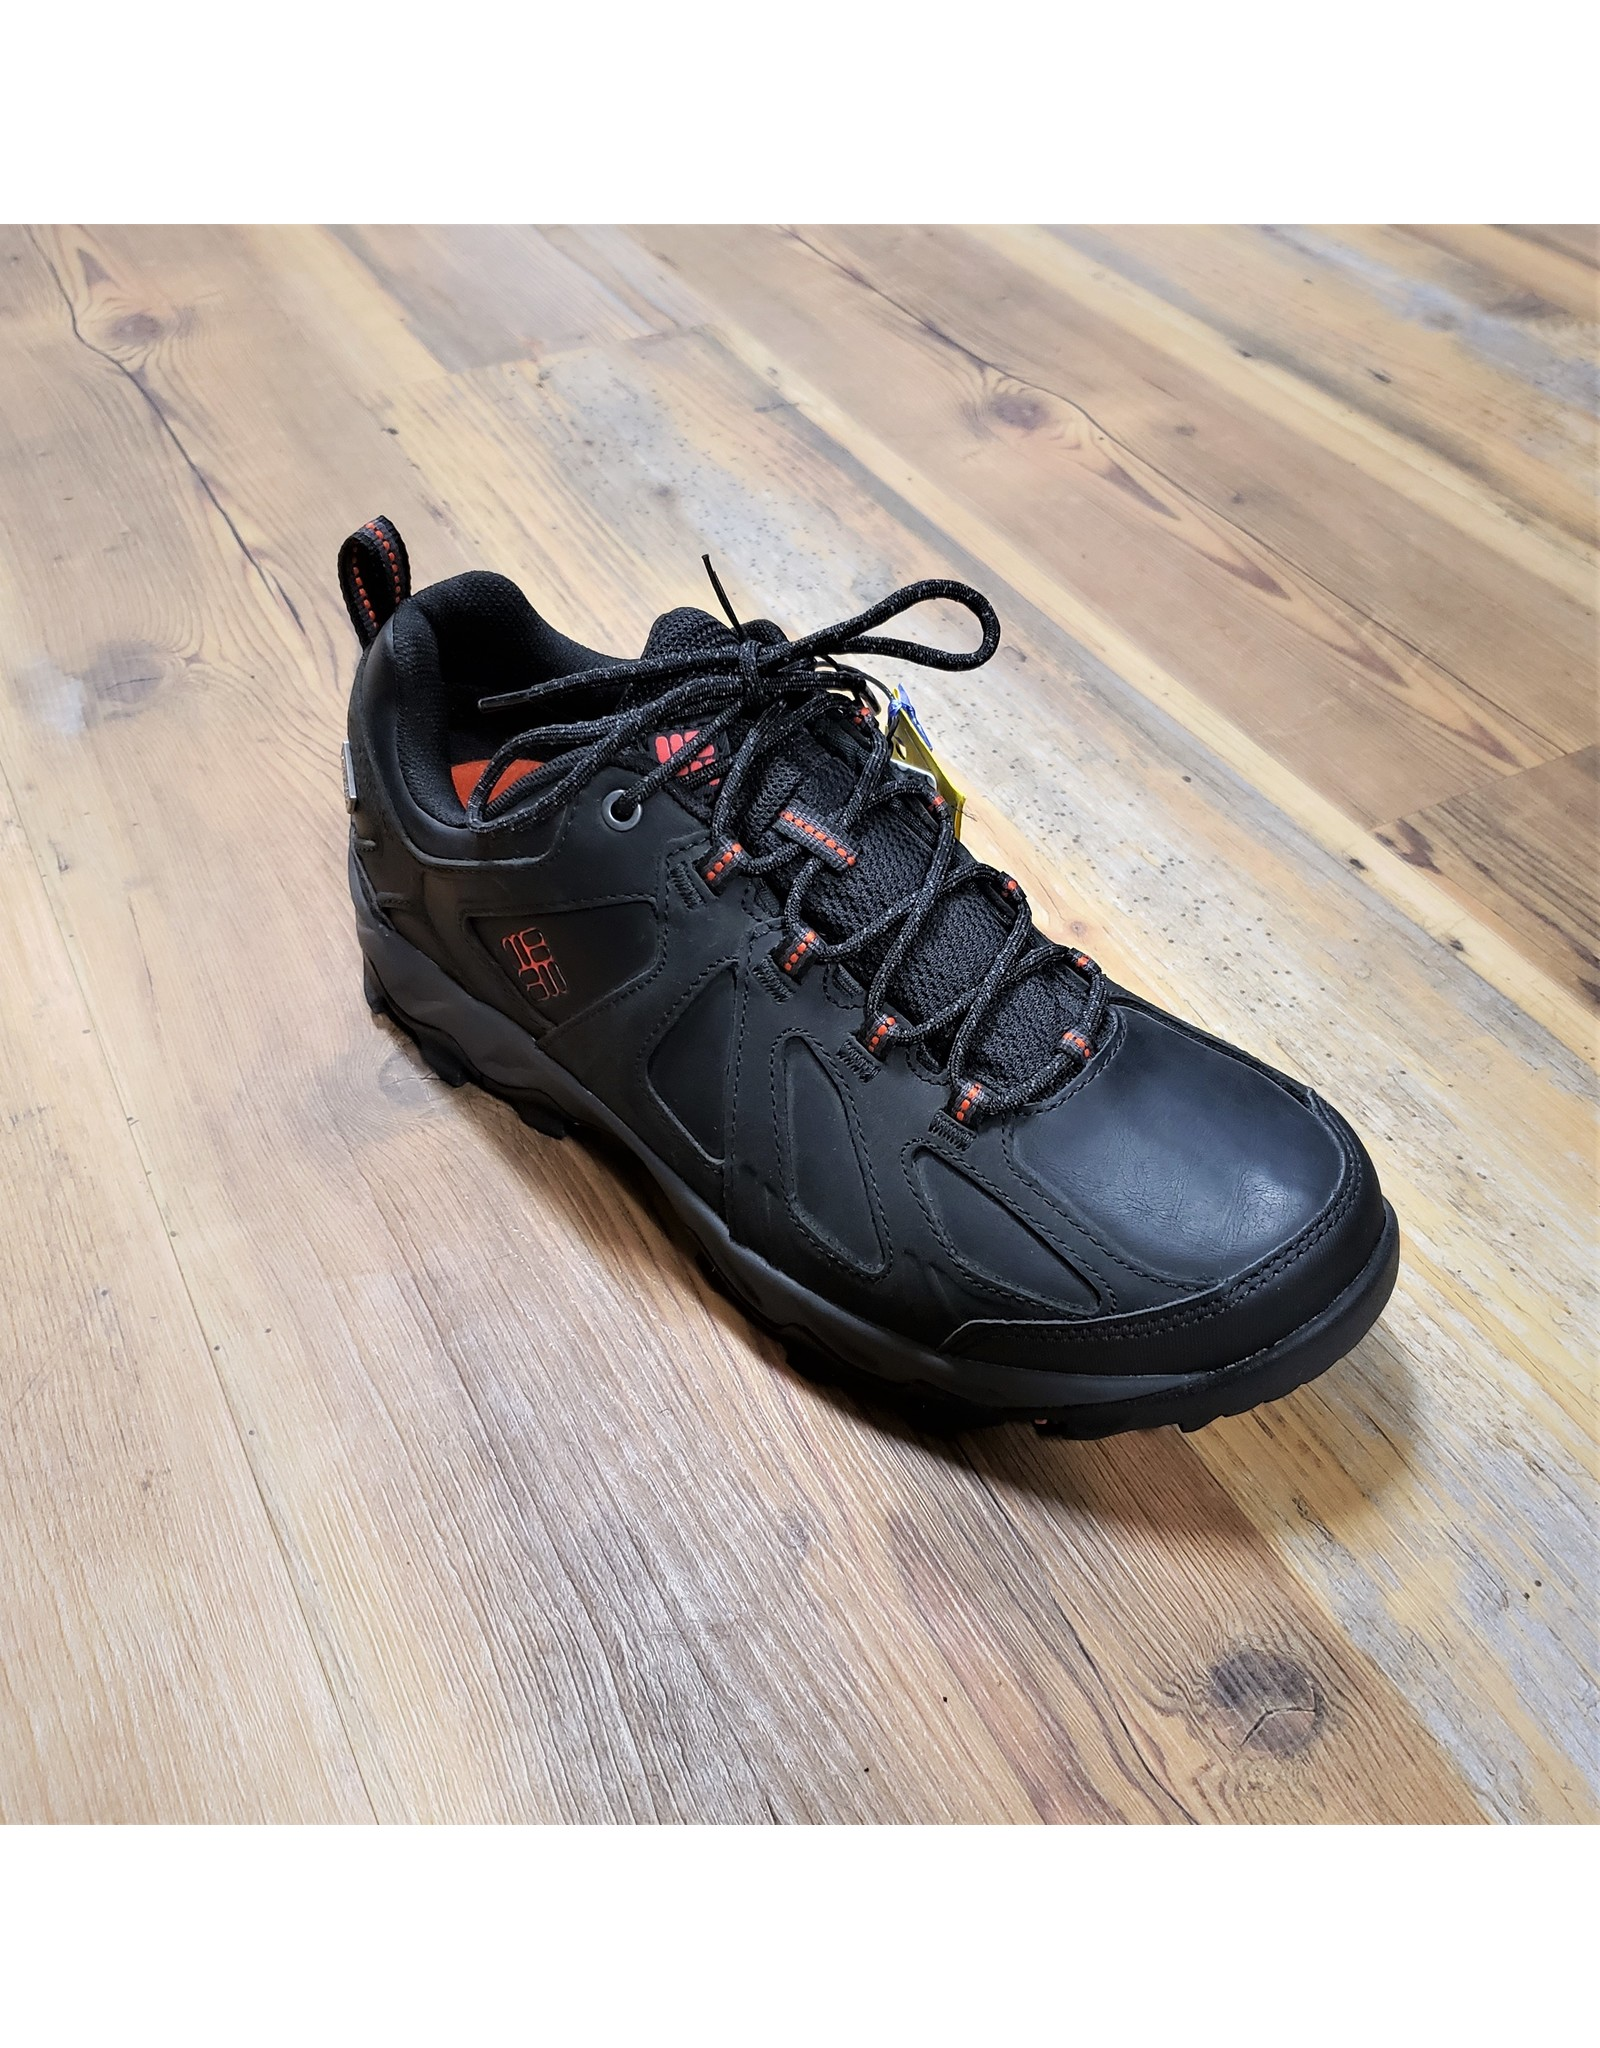 COLUMBIA SPORTSWEAR PEAK FREAK LOW MENS LEATHER OUTDRY HIKE SHOE